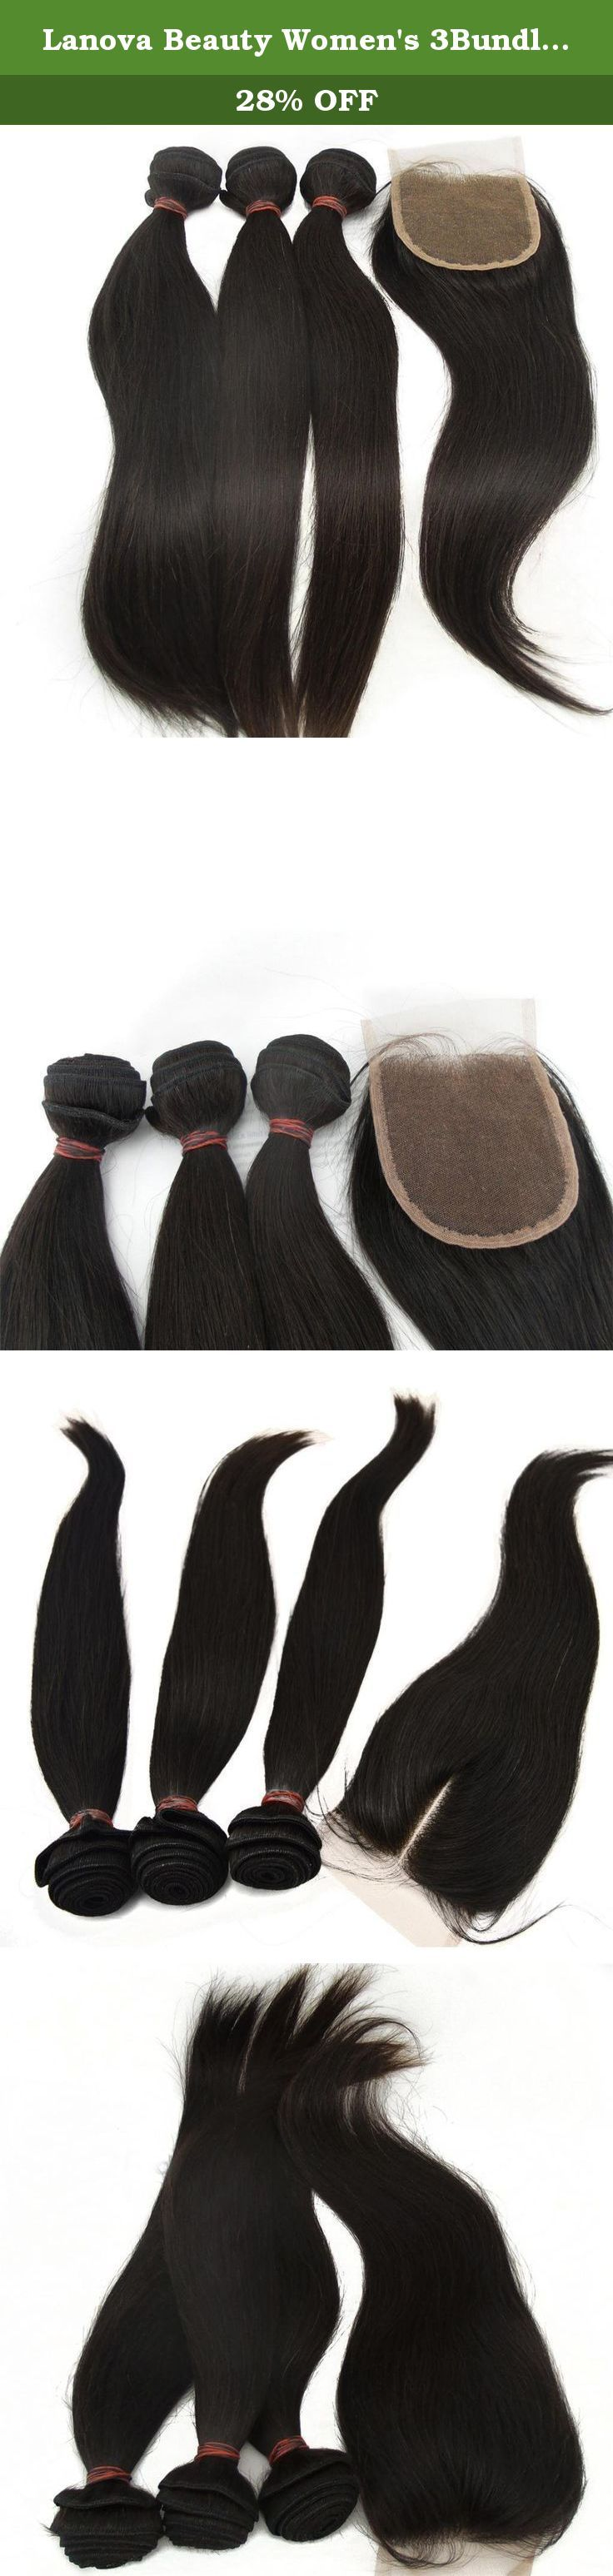 """Lanova Beauty Women's 3Bundles+1Closure Brazilian Straight Hair Raw Virgin Remy Human Hair Extensions 3Pcs10""""3 and 1piece Remy Hair Closure(44)10"""". 100% human virgin hair, 1,Cut hair from young healthy girl's braid, the hair is with full cuticle; 2,The hair is shine, soft, thick and no tangle and no shedding; 3,With high technic and our hair texture last Long time,Using head sewing machine make the double weft, it can dye to any color you like; 4,Lanova hair is easily..."""